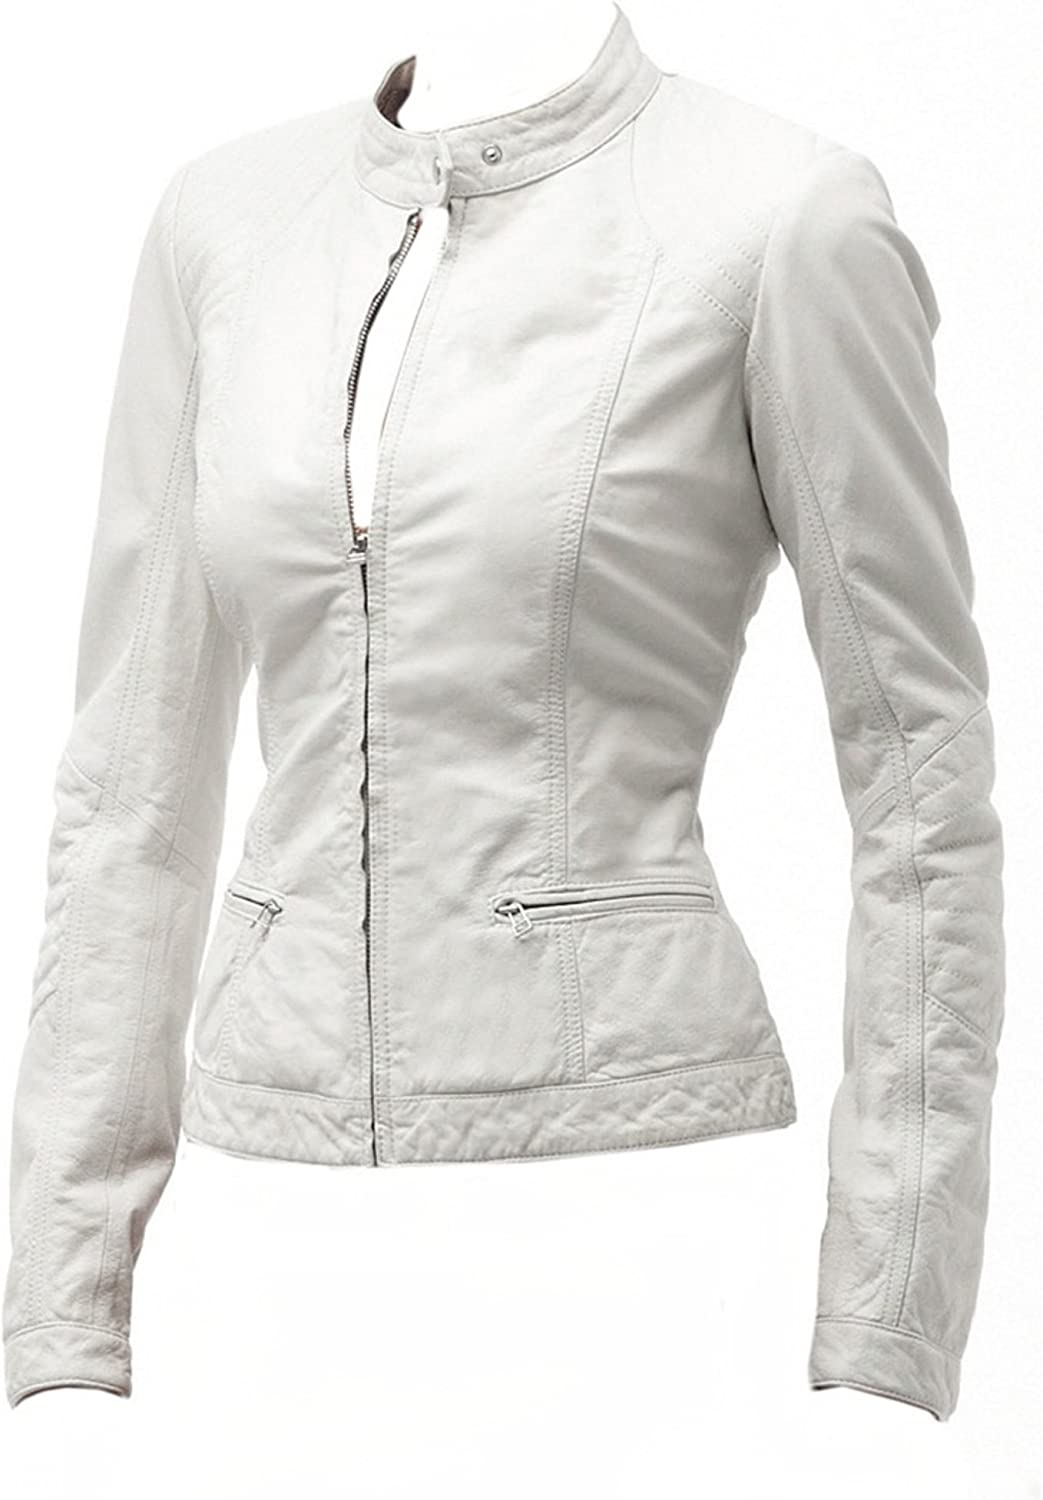 White Sky Xs 4xl Classyak Women Fashion Genuine Leather Jacket